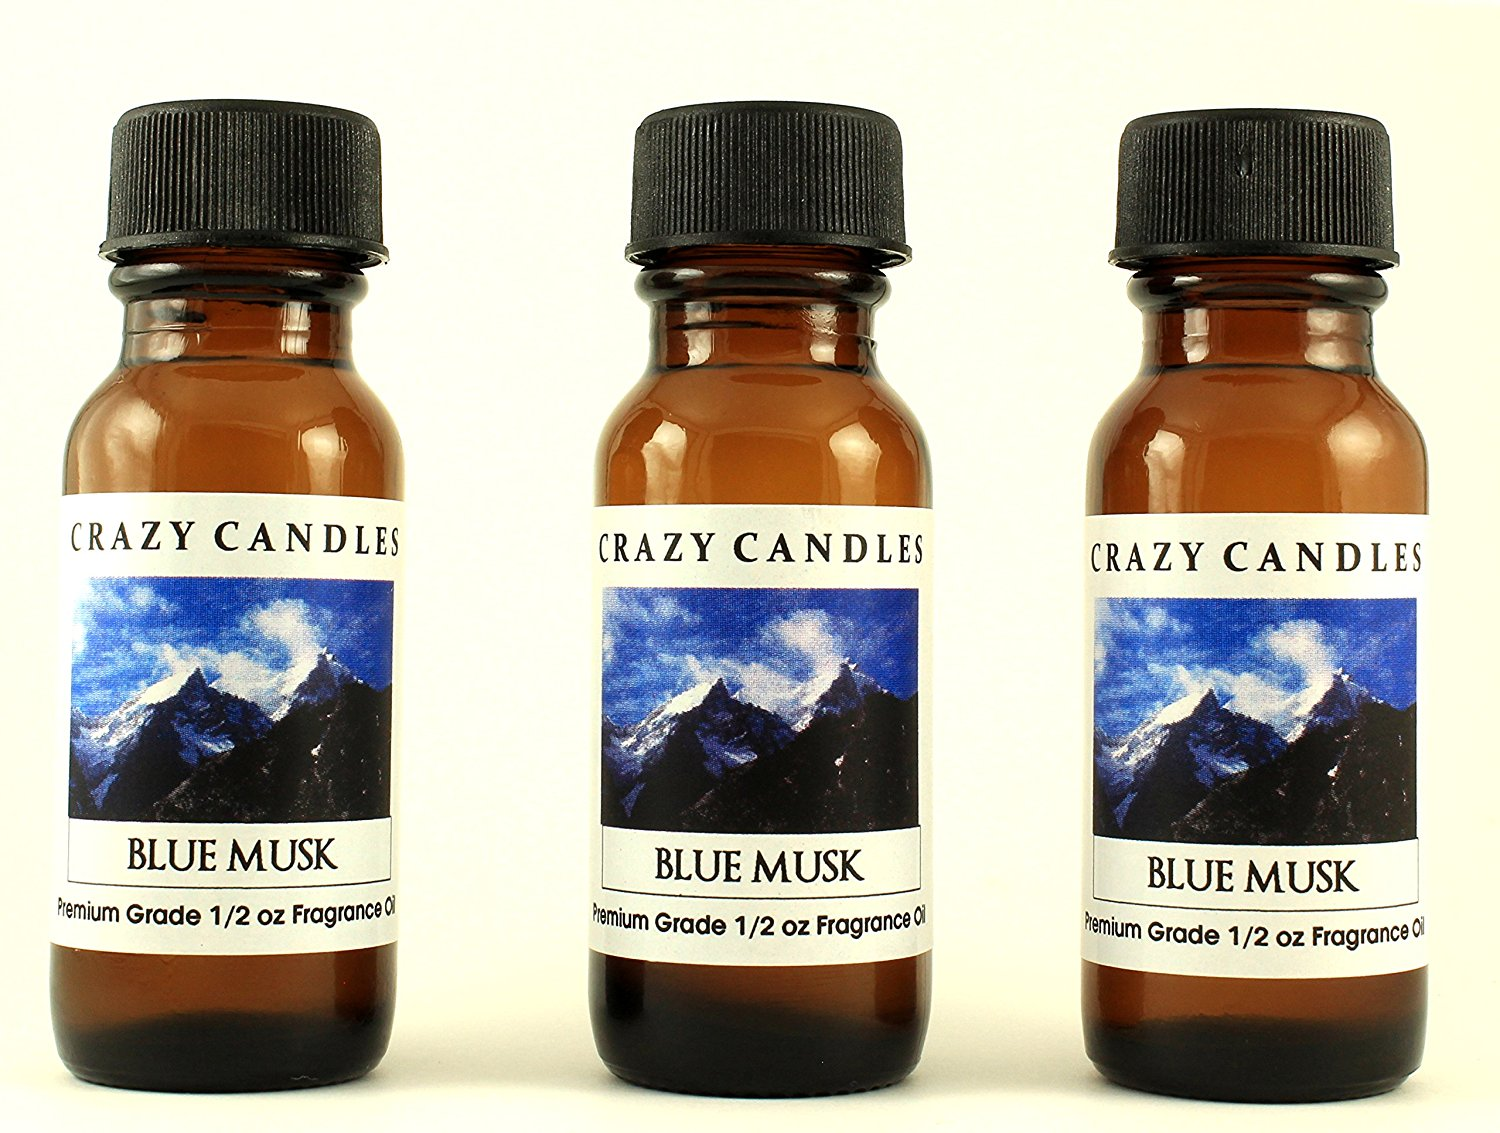 Blue Musk 3 Bottles 1/2 Fl Oz Each (15ml) Premium Grade Scented Fragrance Oil By Crazy Candles (A Crisp and Clean Scent)